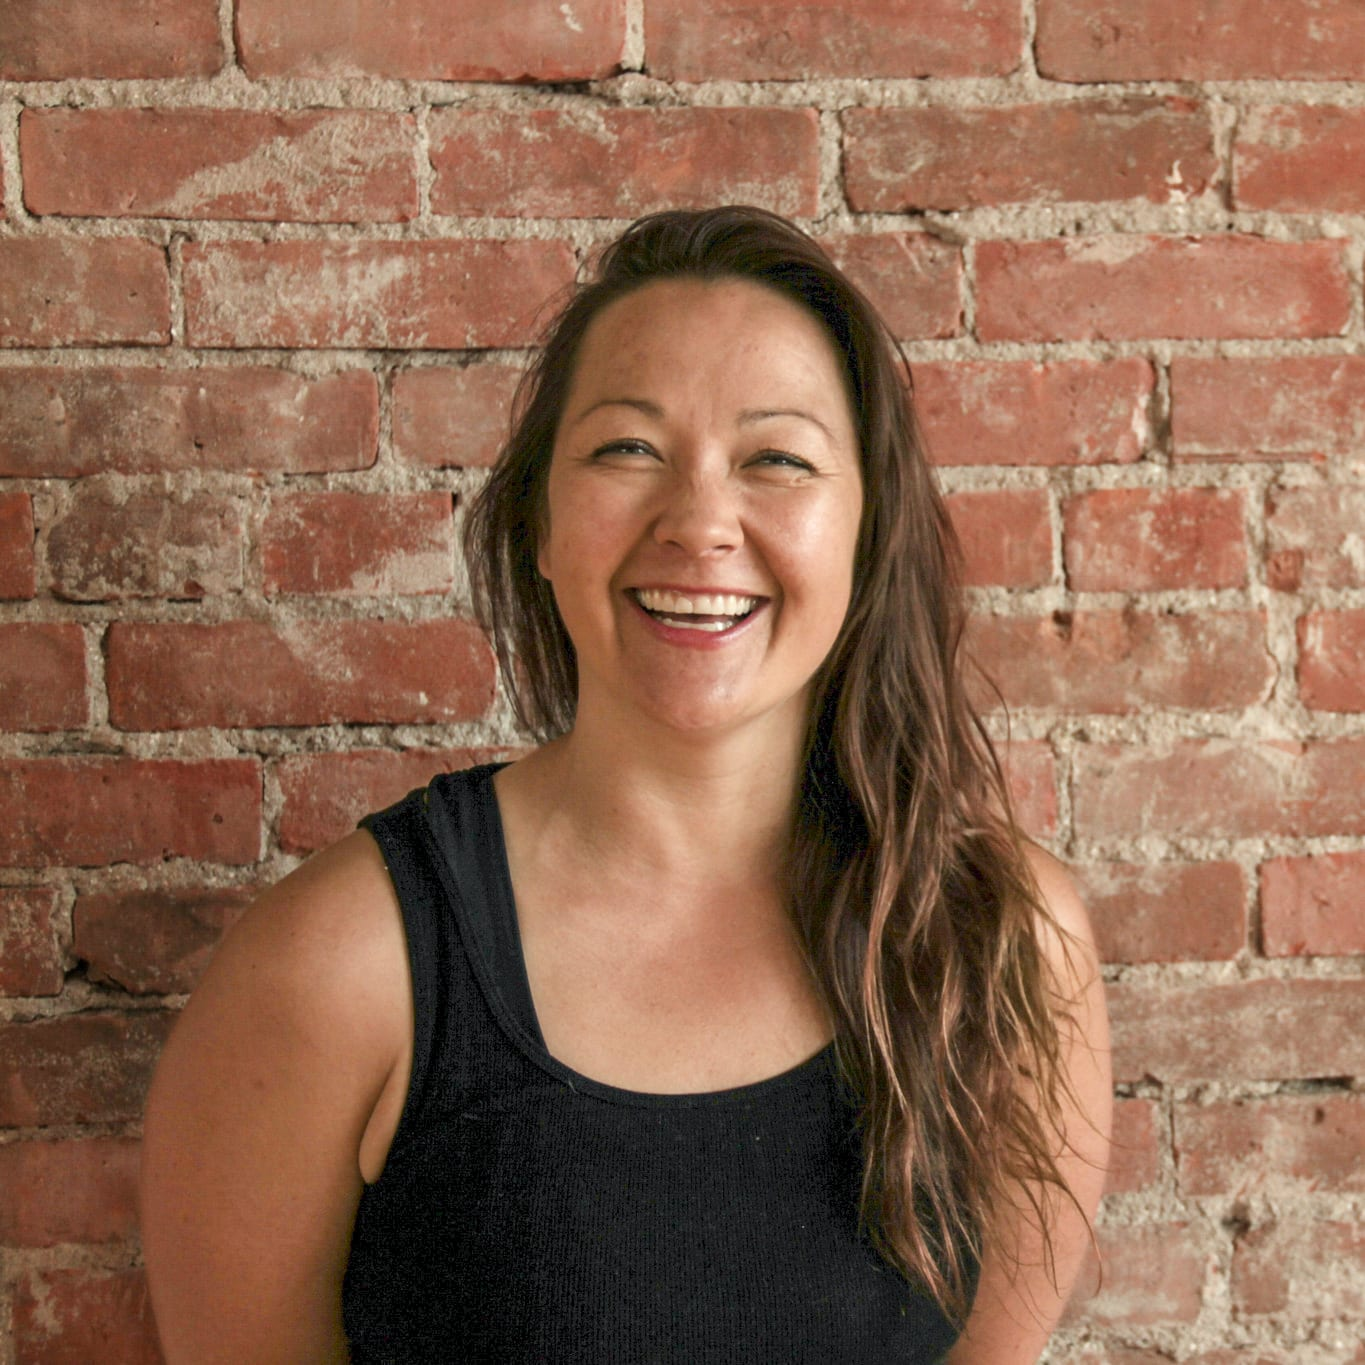 Shonna Lamb, wearing a black tank top, with long wavy brown hair, smiles while standing against a red brick wall.